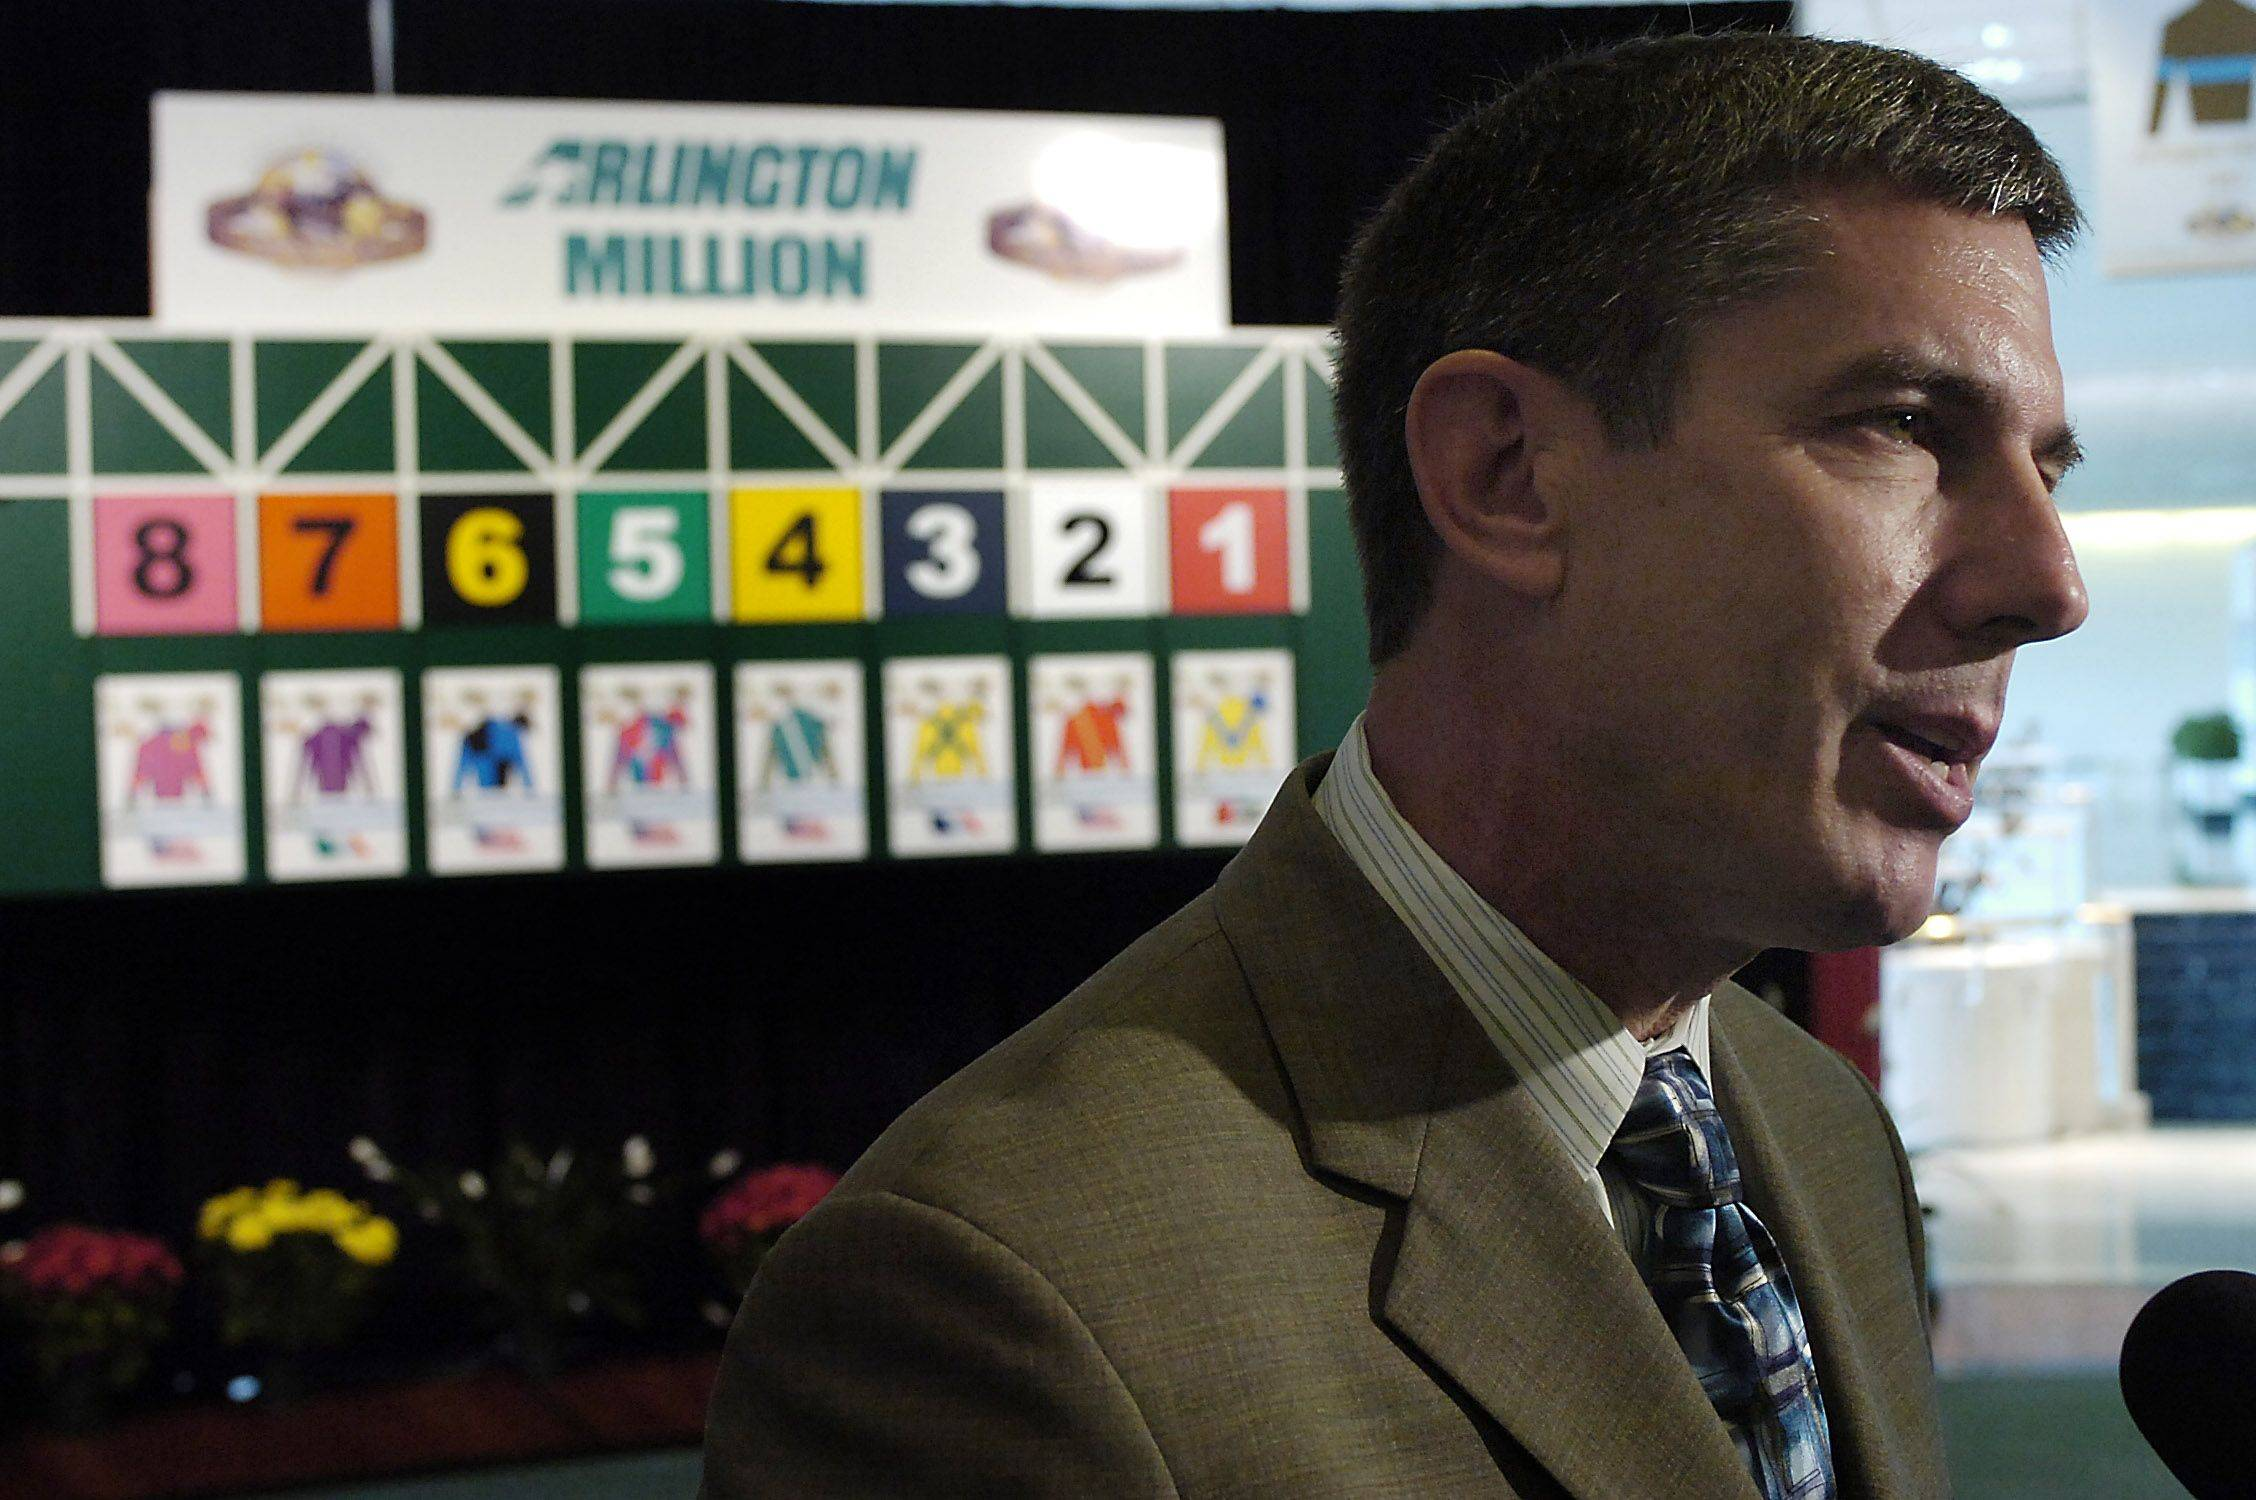 After finishing his fifth season at running Arlington Park, track president Roy Arnold has resigned to pursue other interests. Arlington Park chairman Richard Duchossois said he will handle the duties until a successor is found.